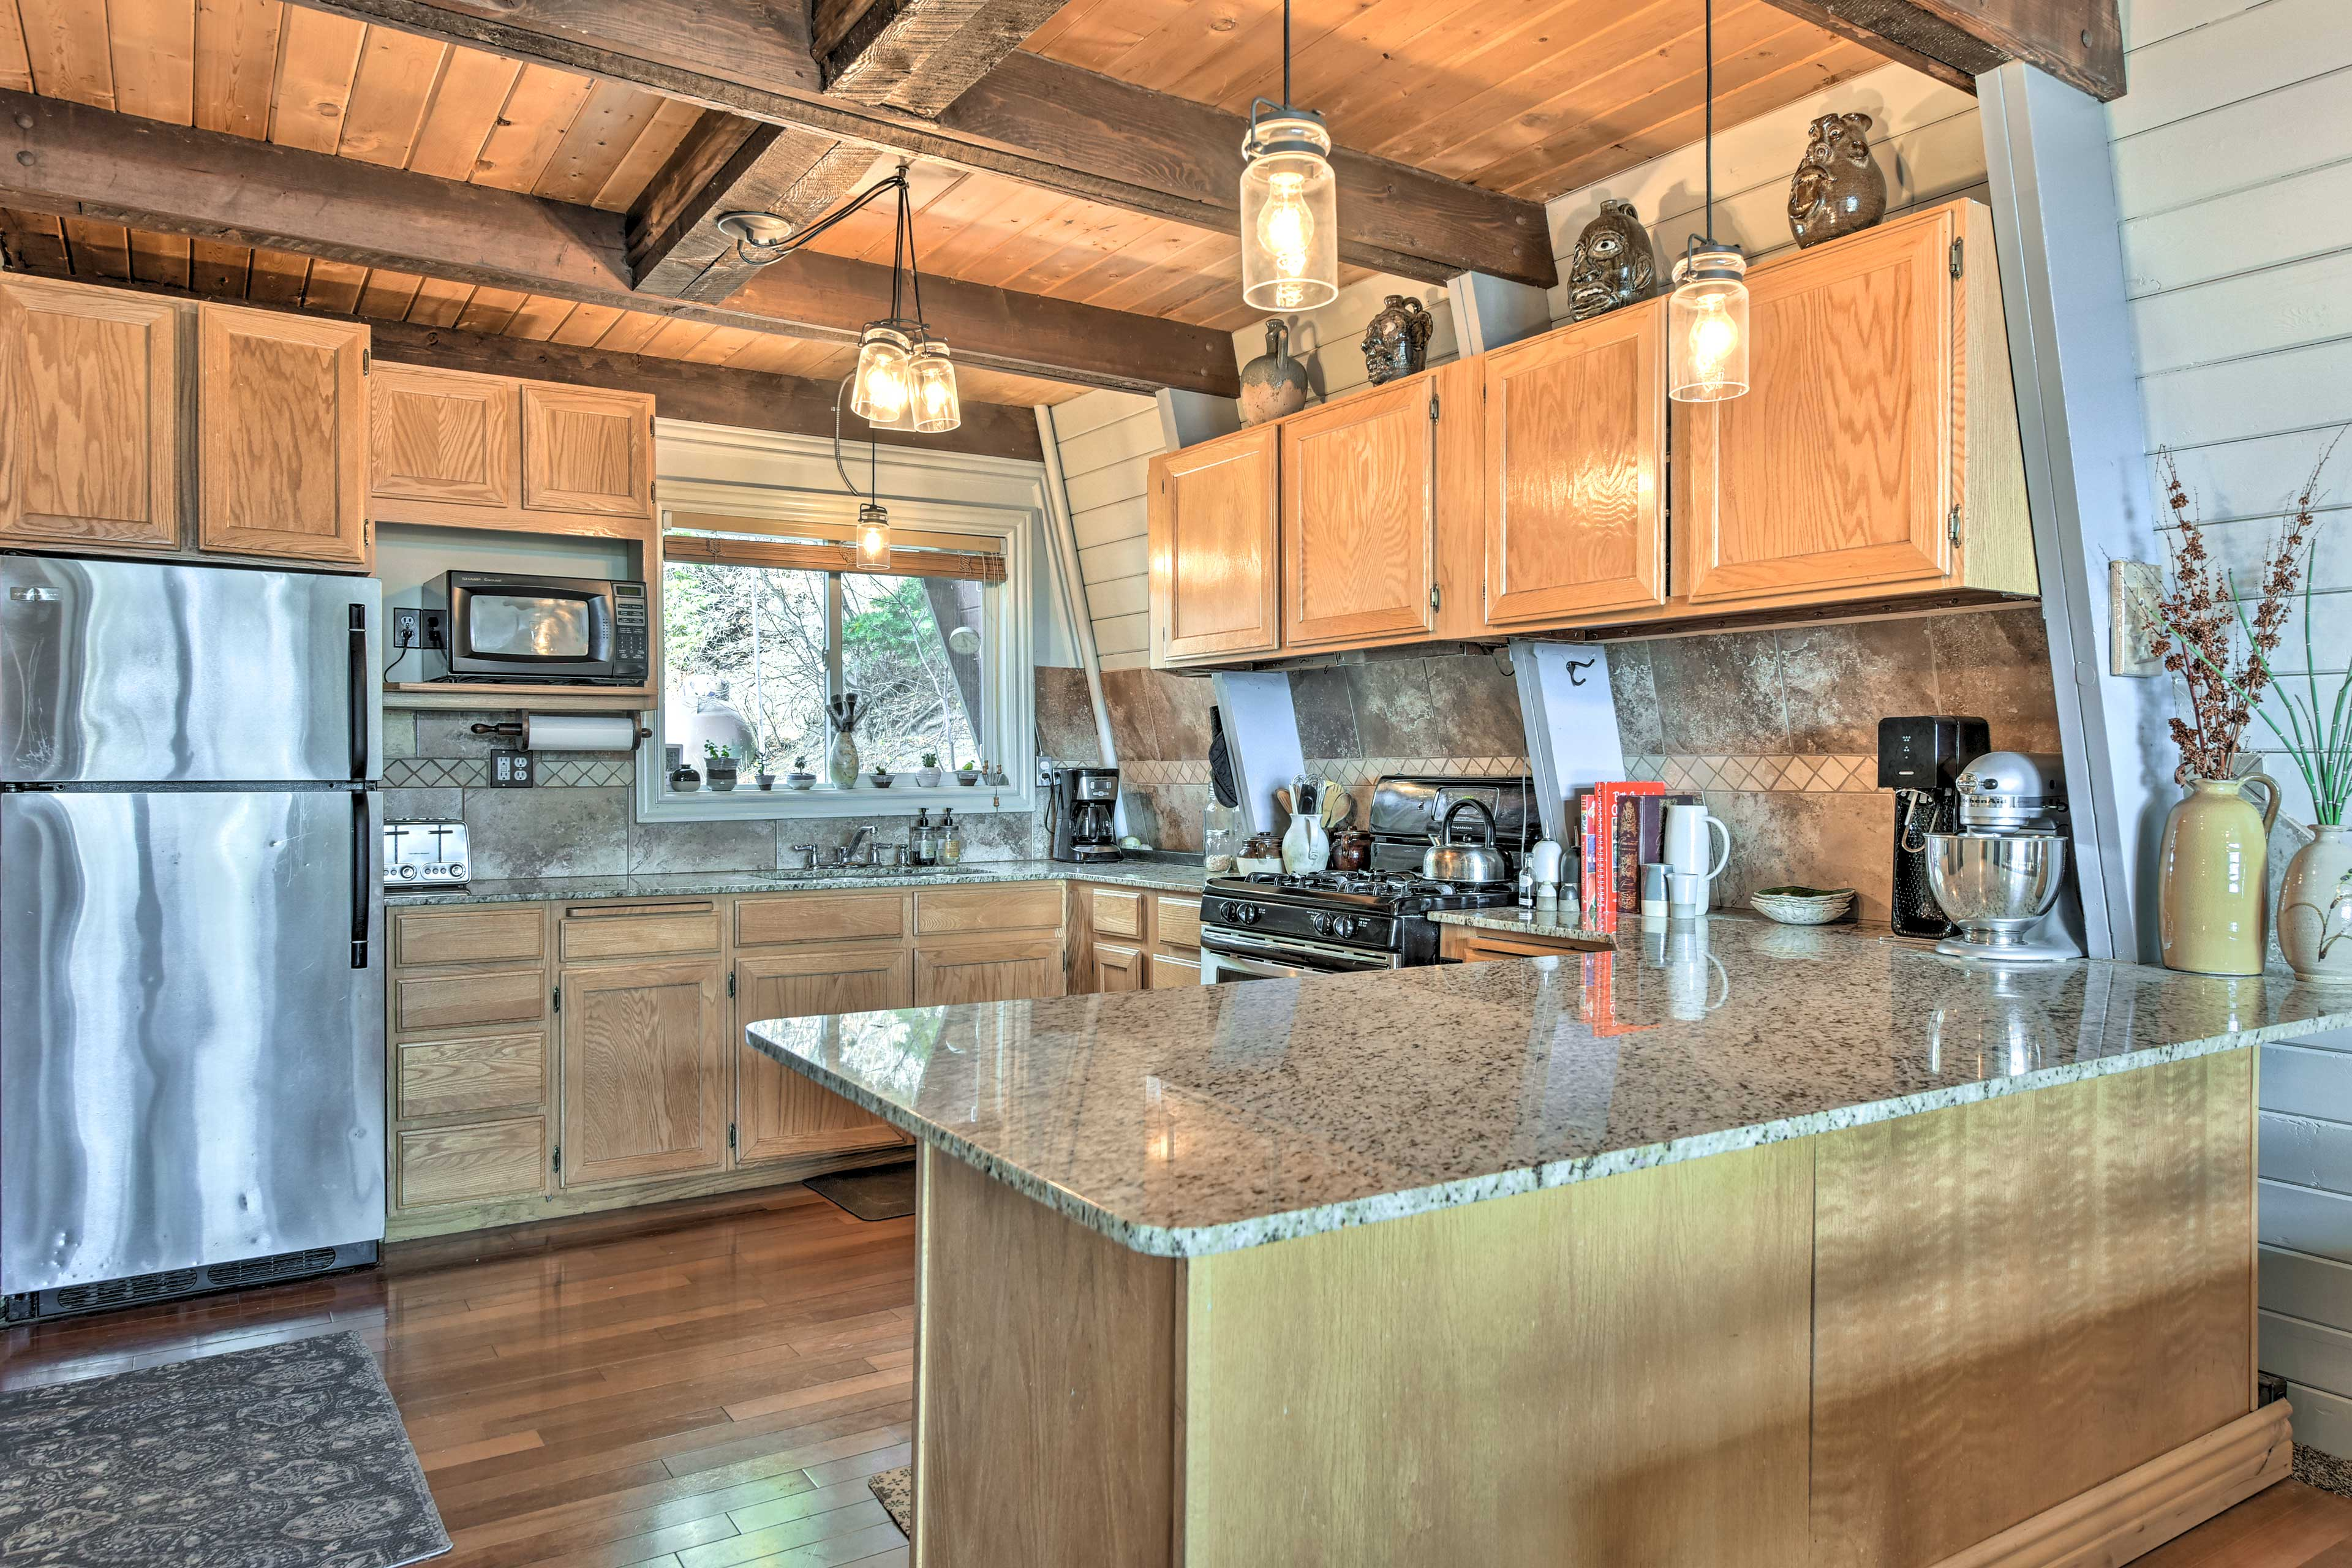 Fully equipped, the kitchen has everything you need for home-cooked cuisine.